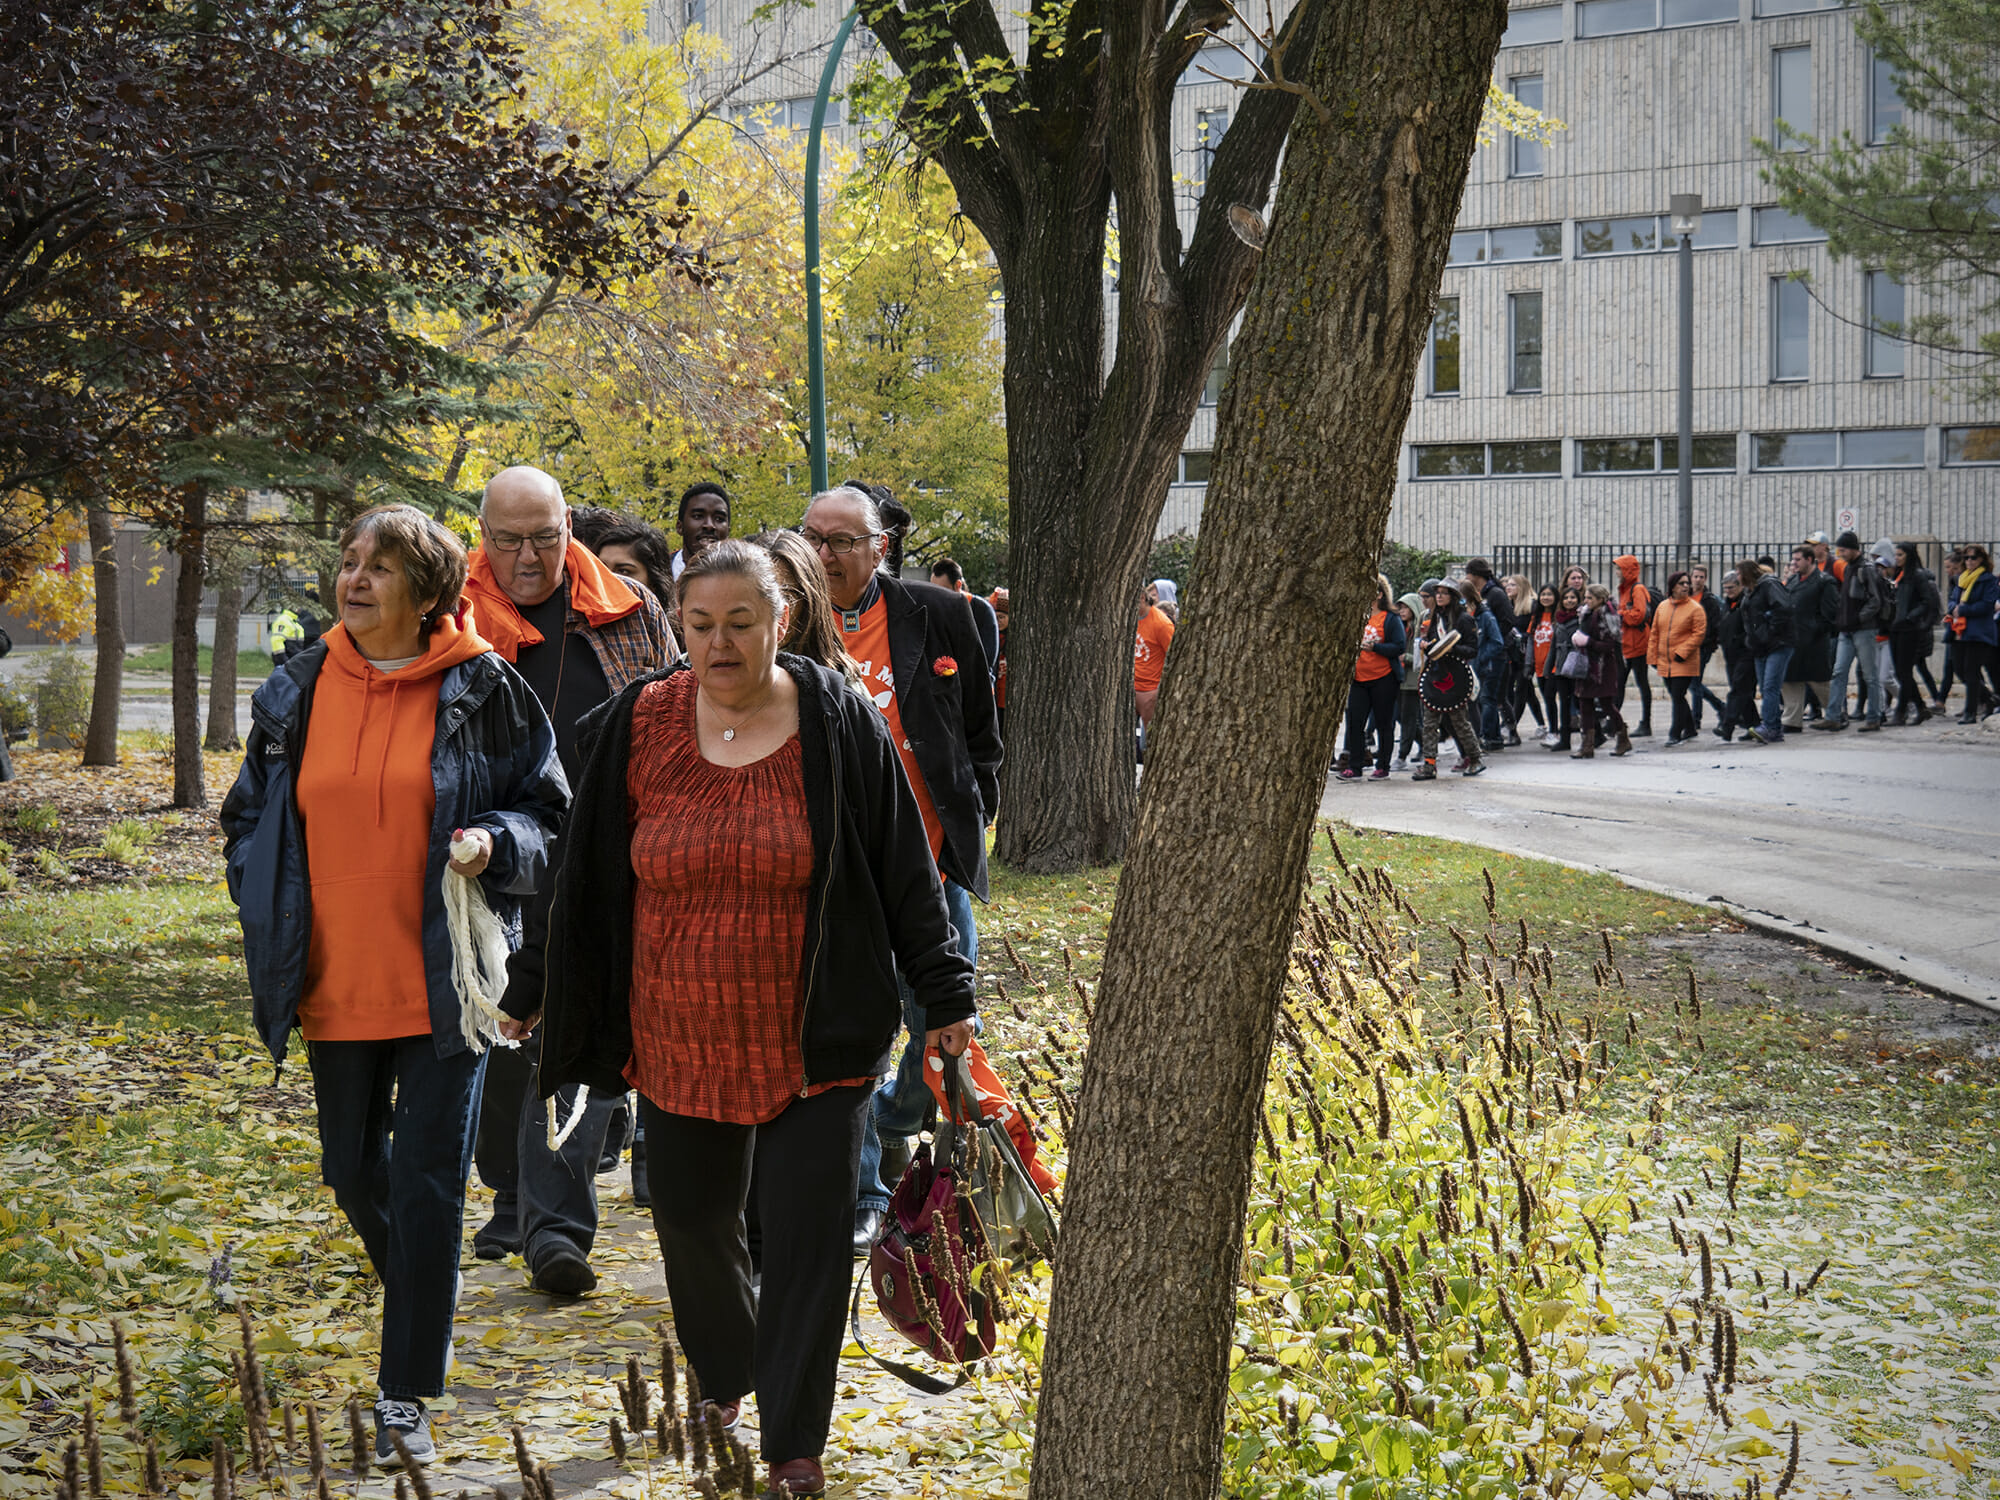 People participating in Orange Shirt Day nurses walk